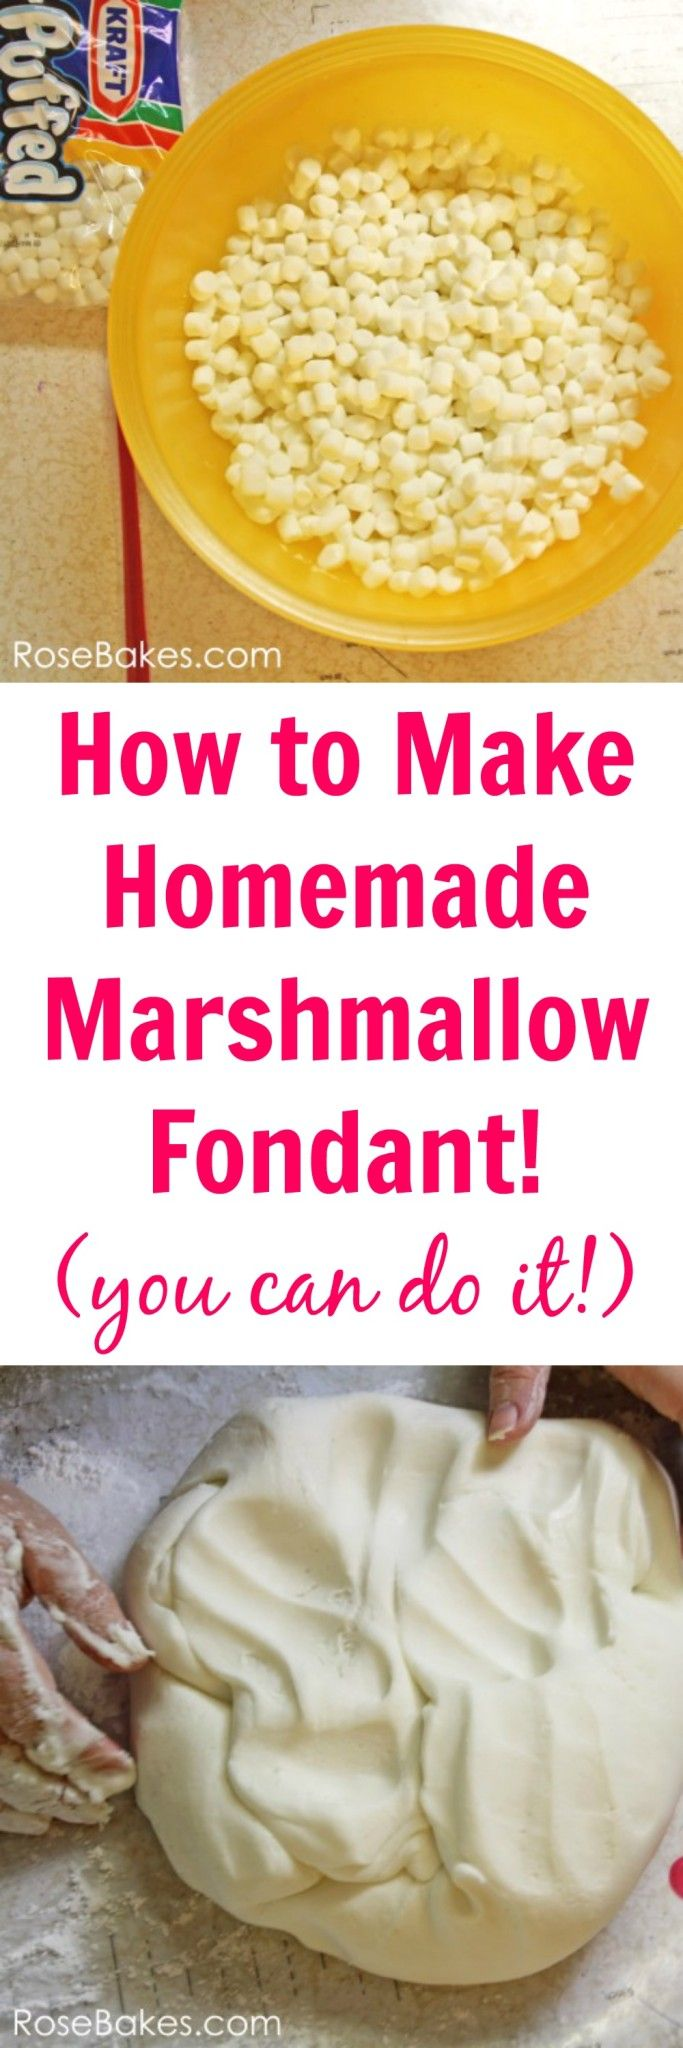 [Actually, odds are I can't, but mights as well pin anyway.] How to Make Homemade Marshmallow Fondant